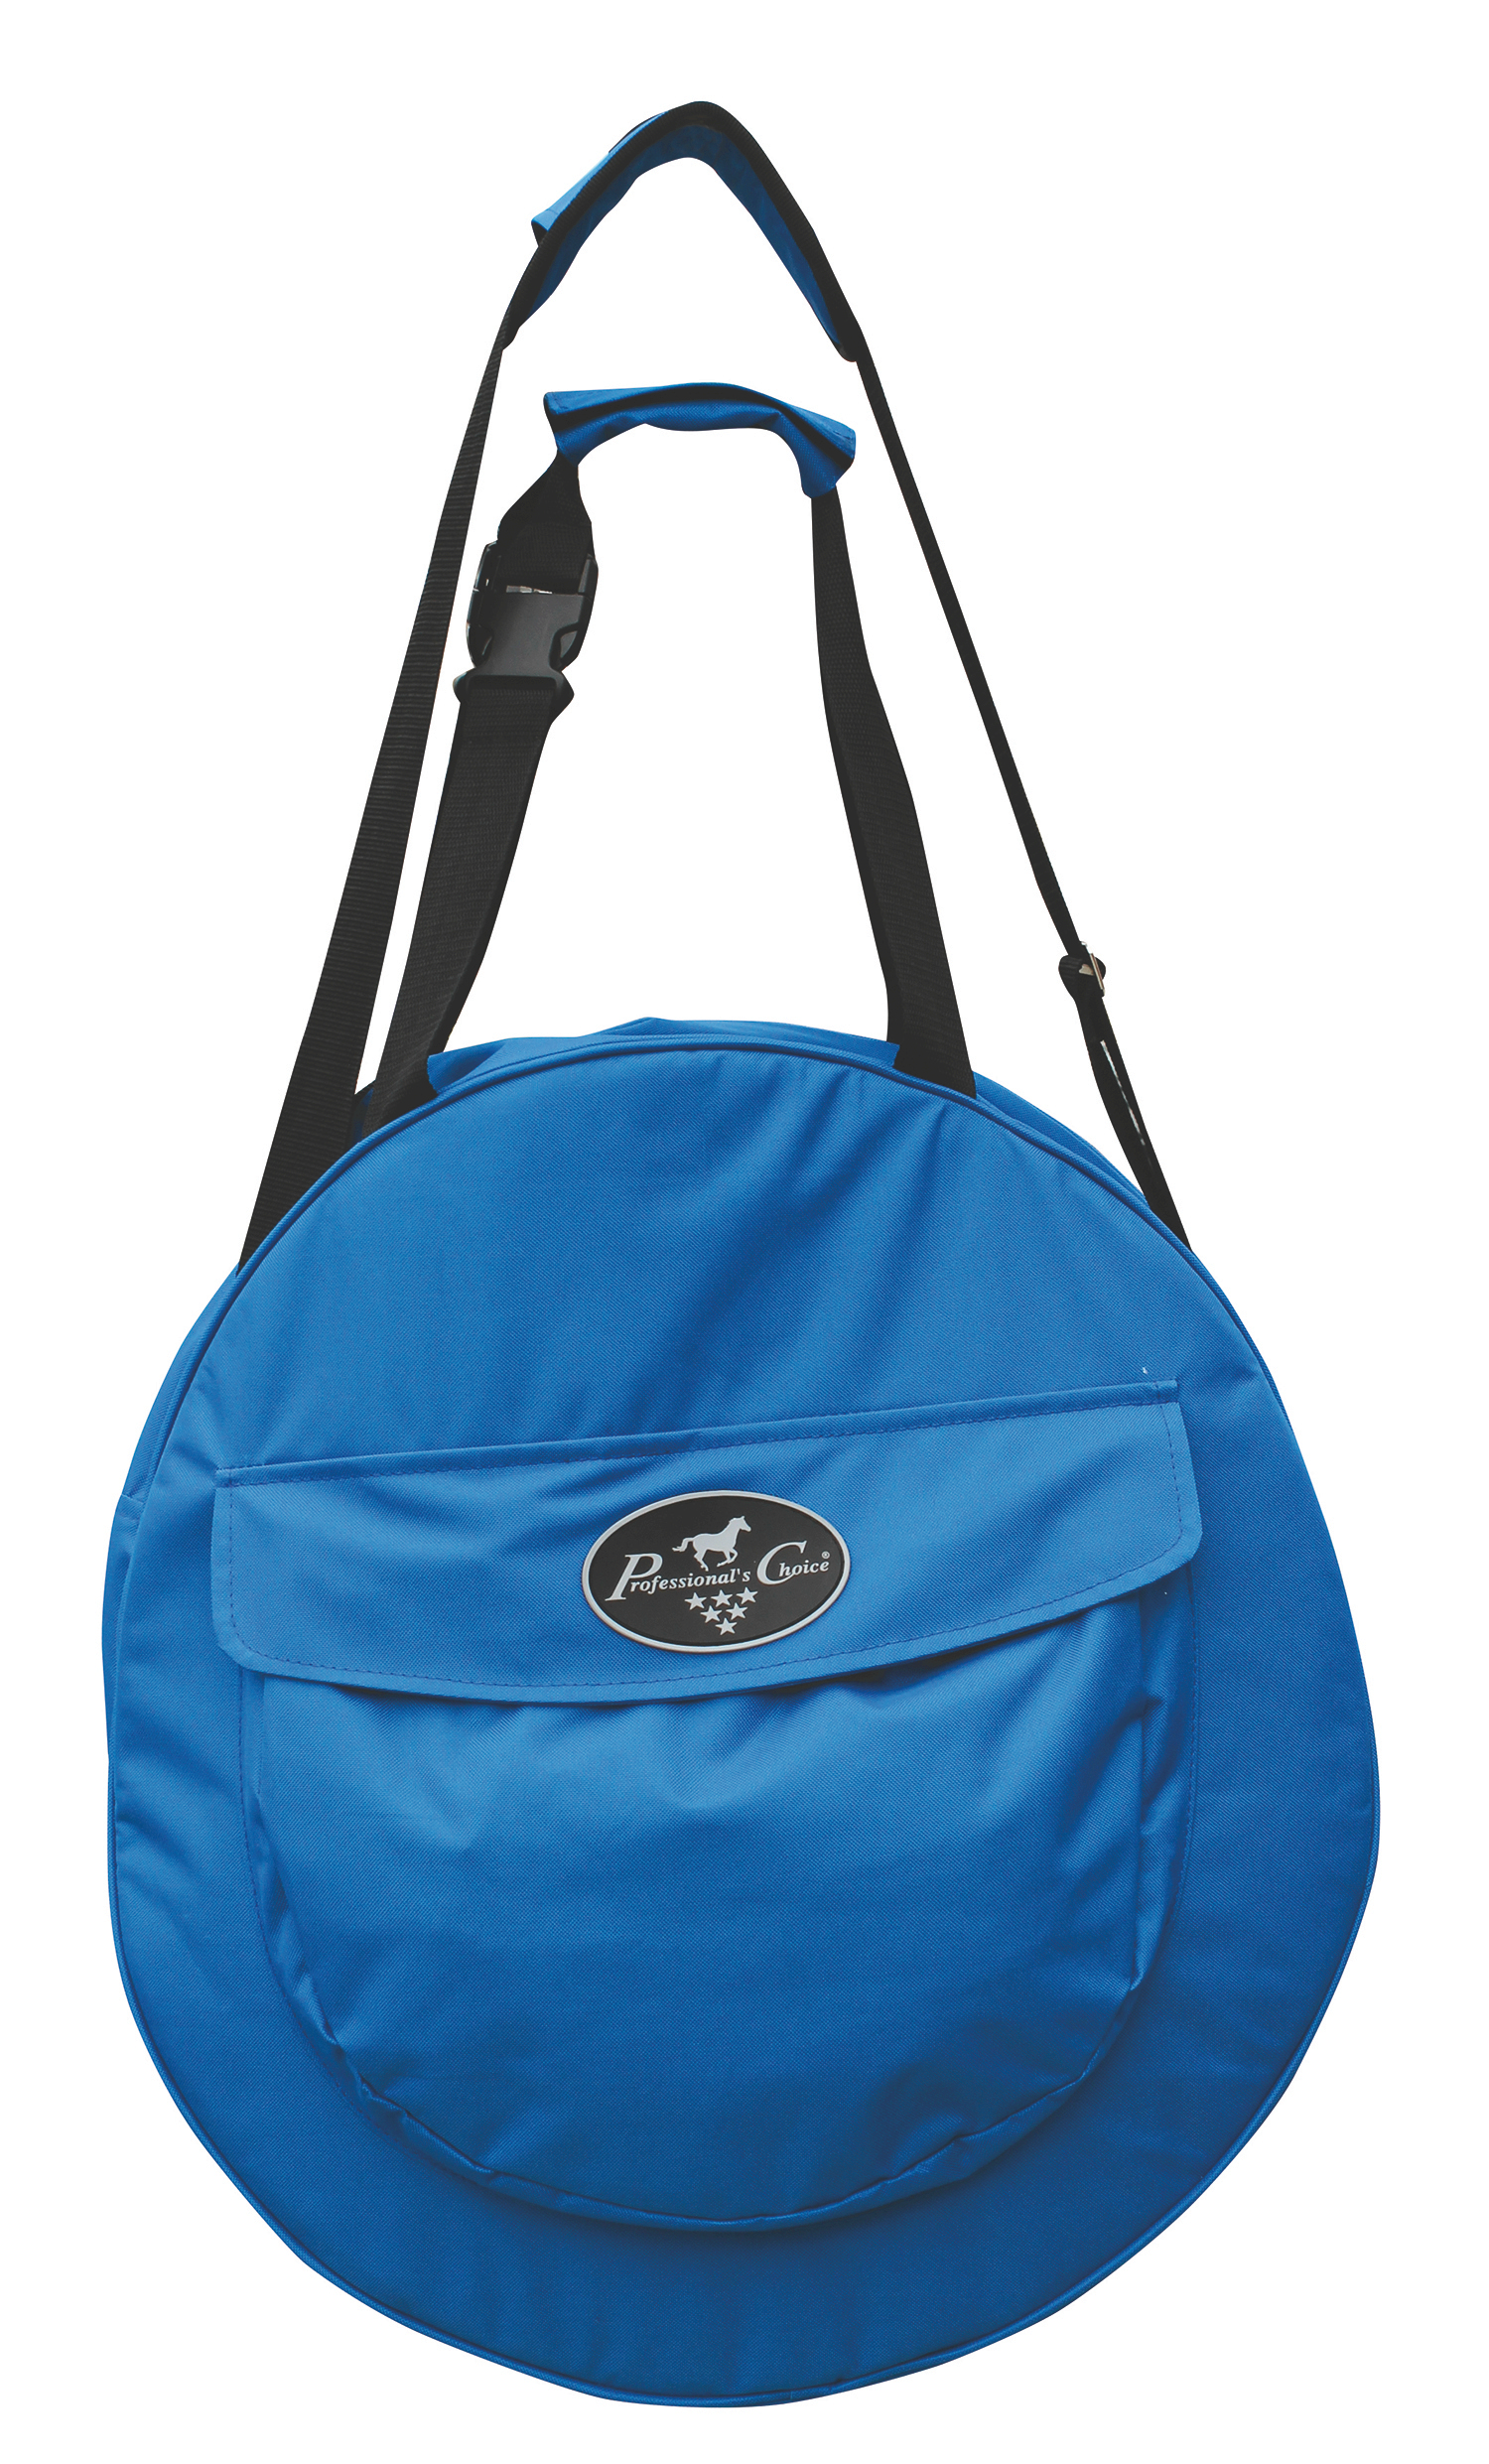 Professional'S Choice Rope Bag